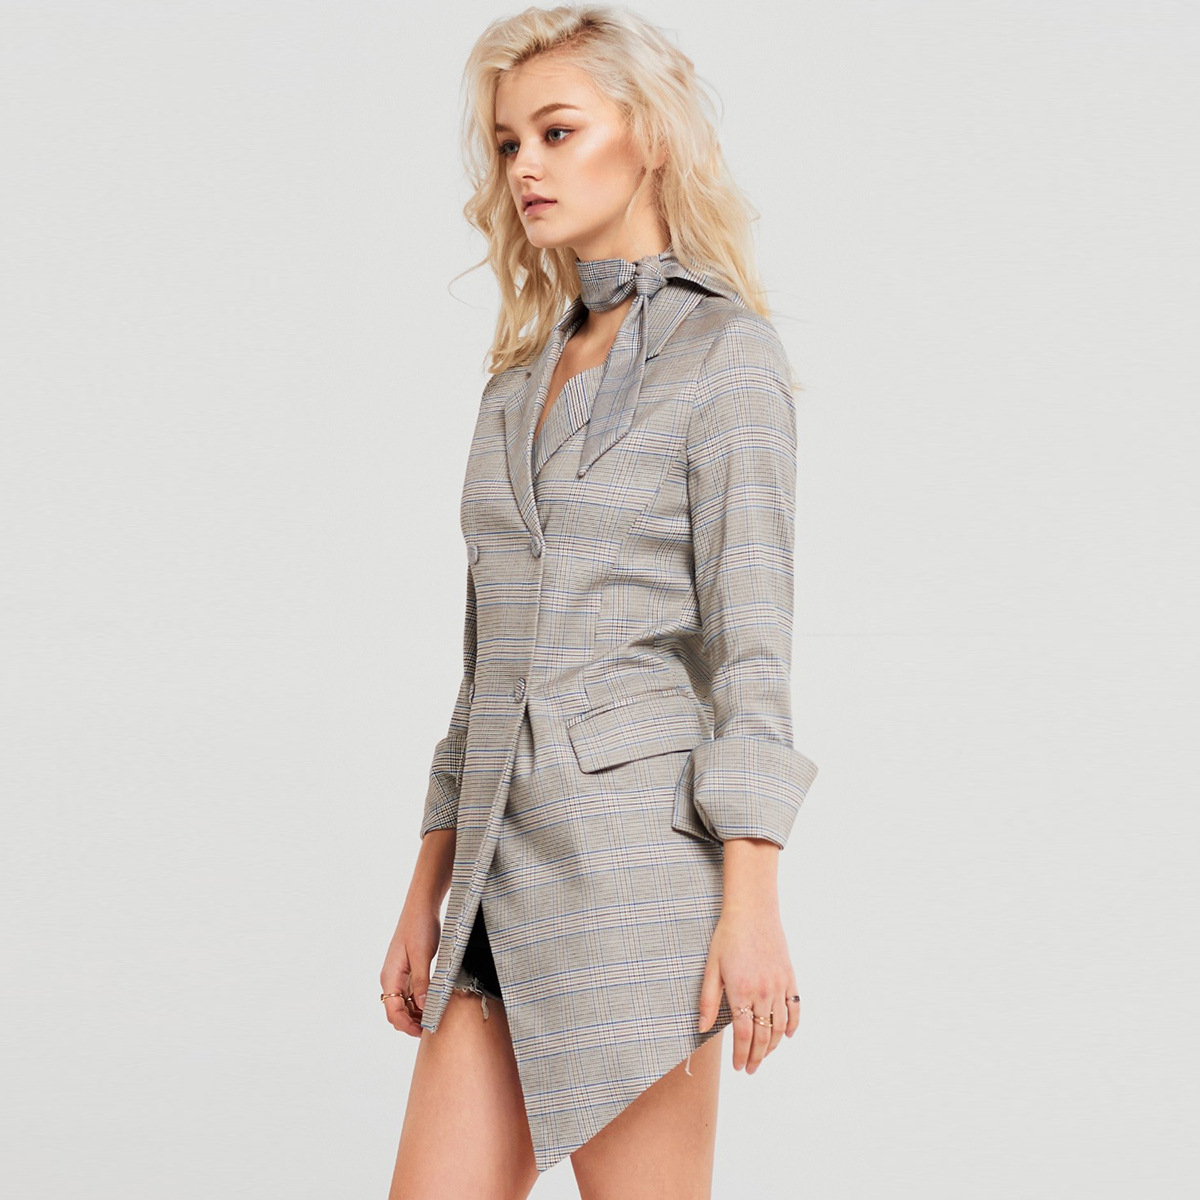 American Fashion Contracted Commuter Irregular Plaid Skirt Restoring Ancient Ways In The Long Leisure Suit Winter Clothes Women